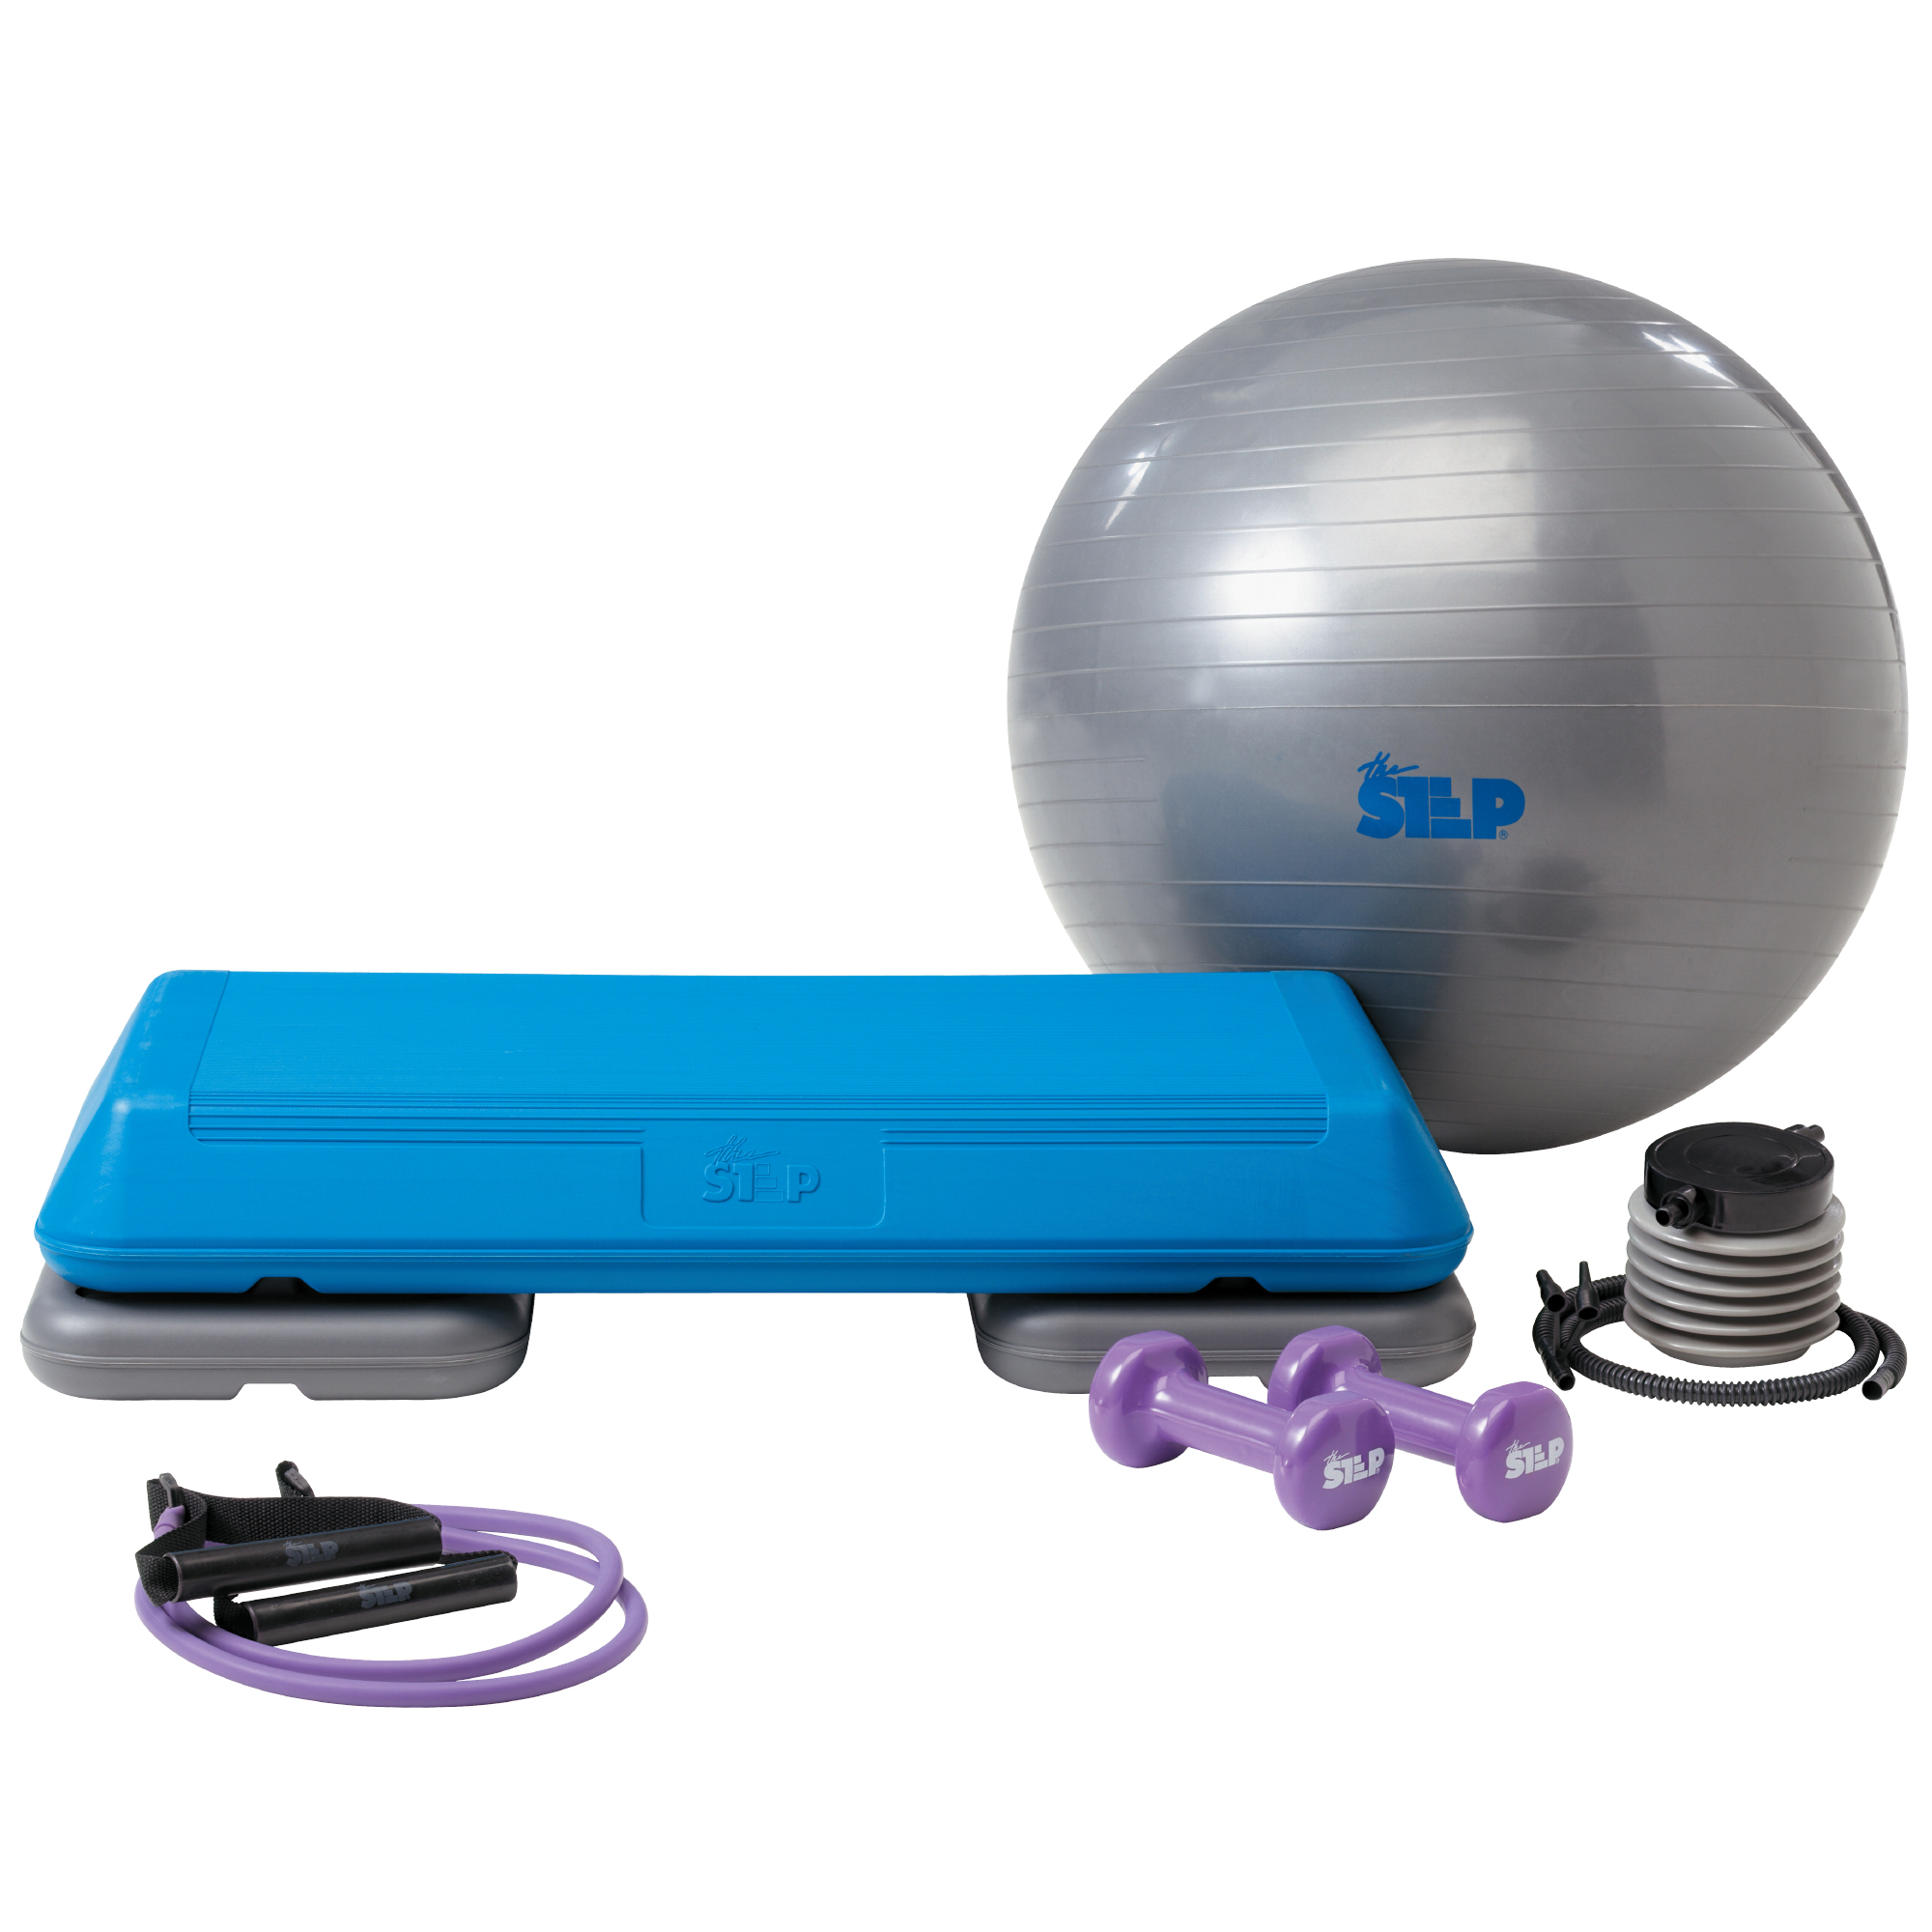 The Step Original Body Fusion Aerobic Platform and Accessories